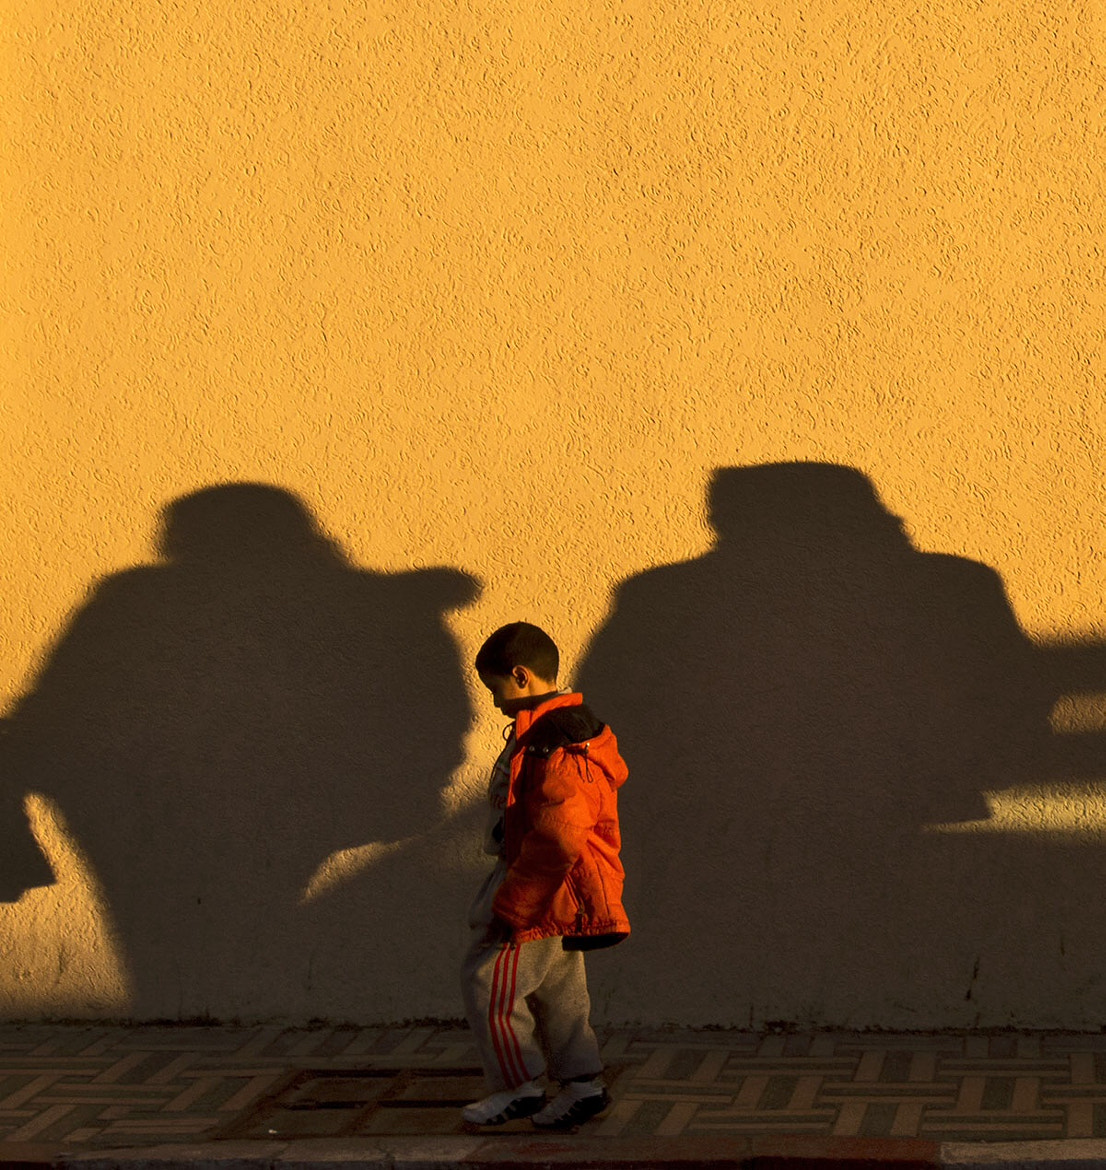 Photograph Between the Shadows by Orna Naor on 500px